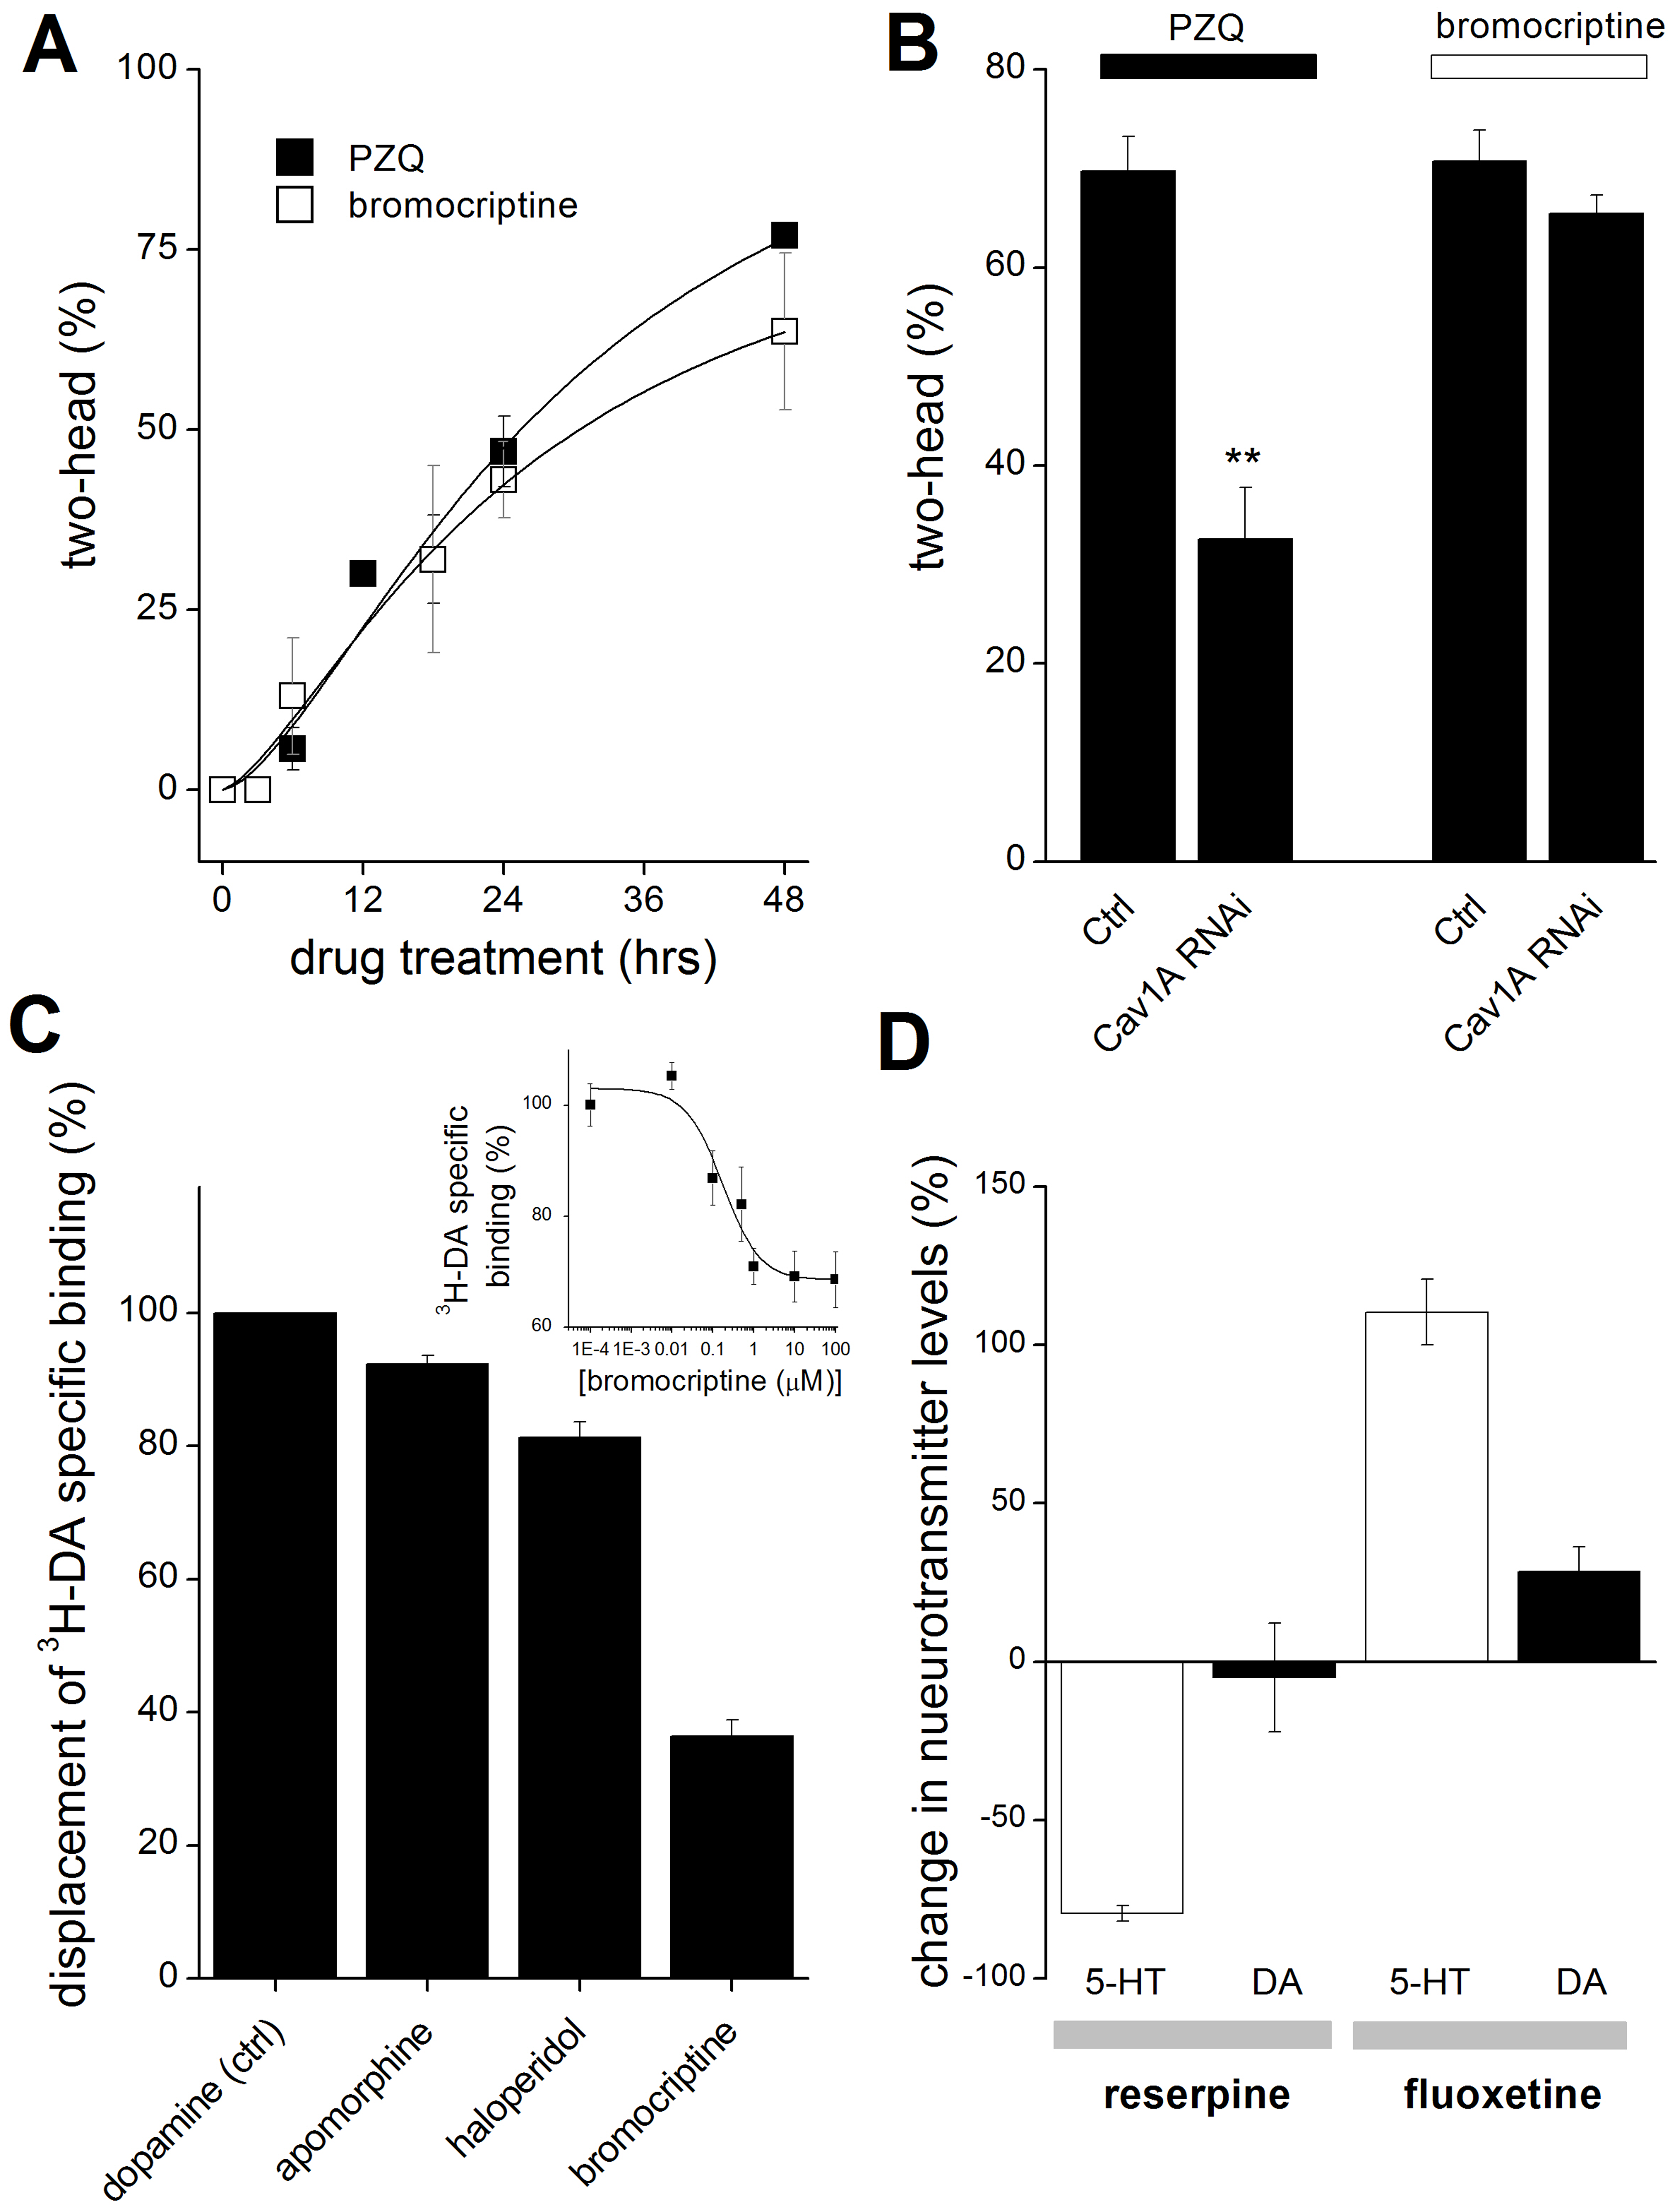 Analysis of drug action and selectivity in the planarian system.